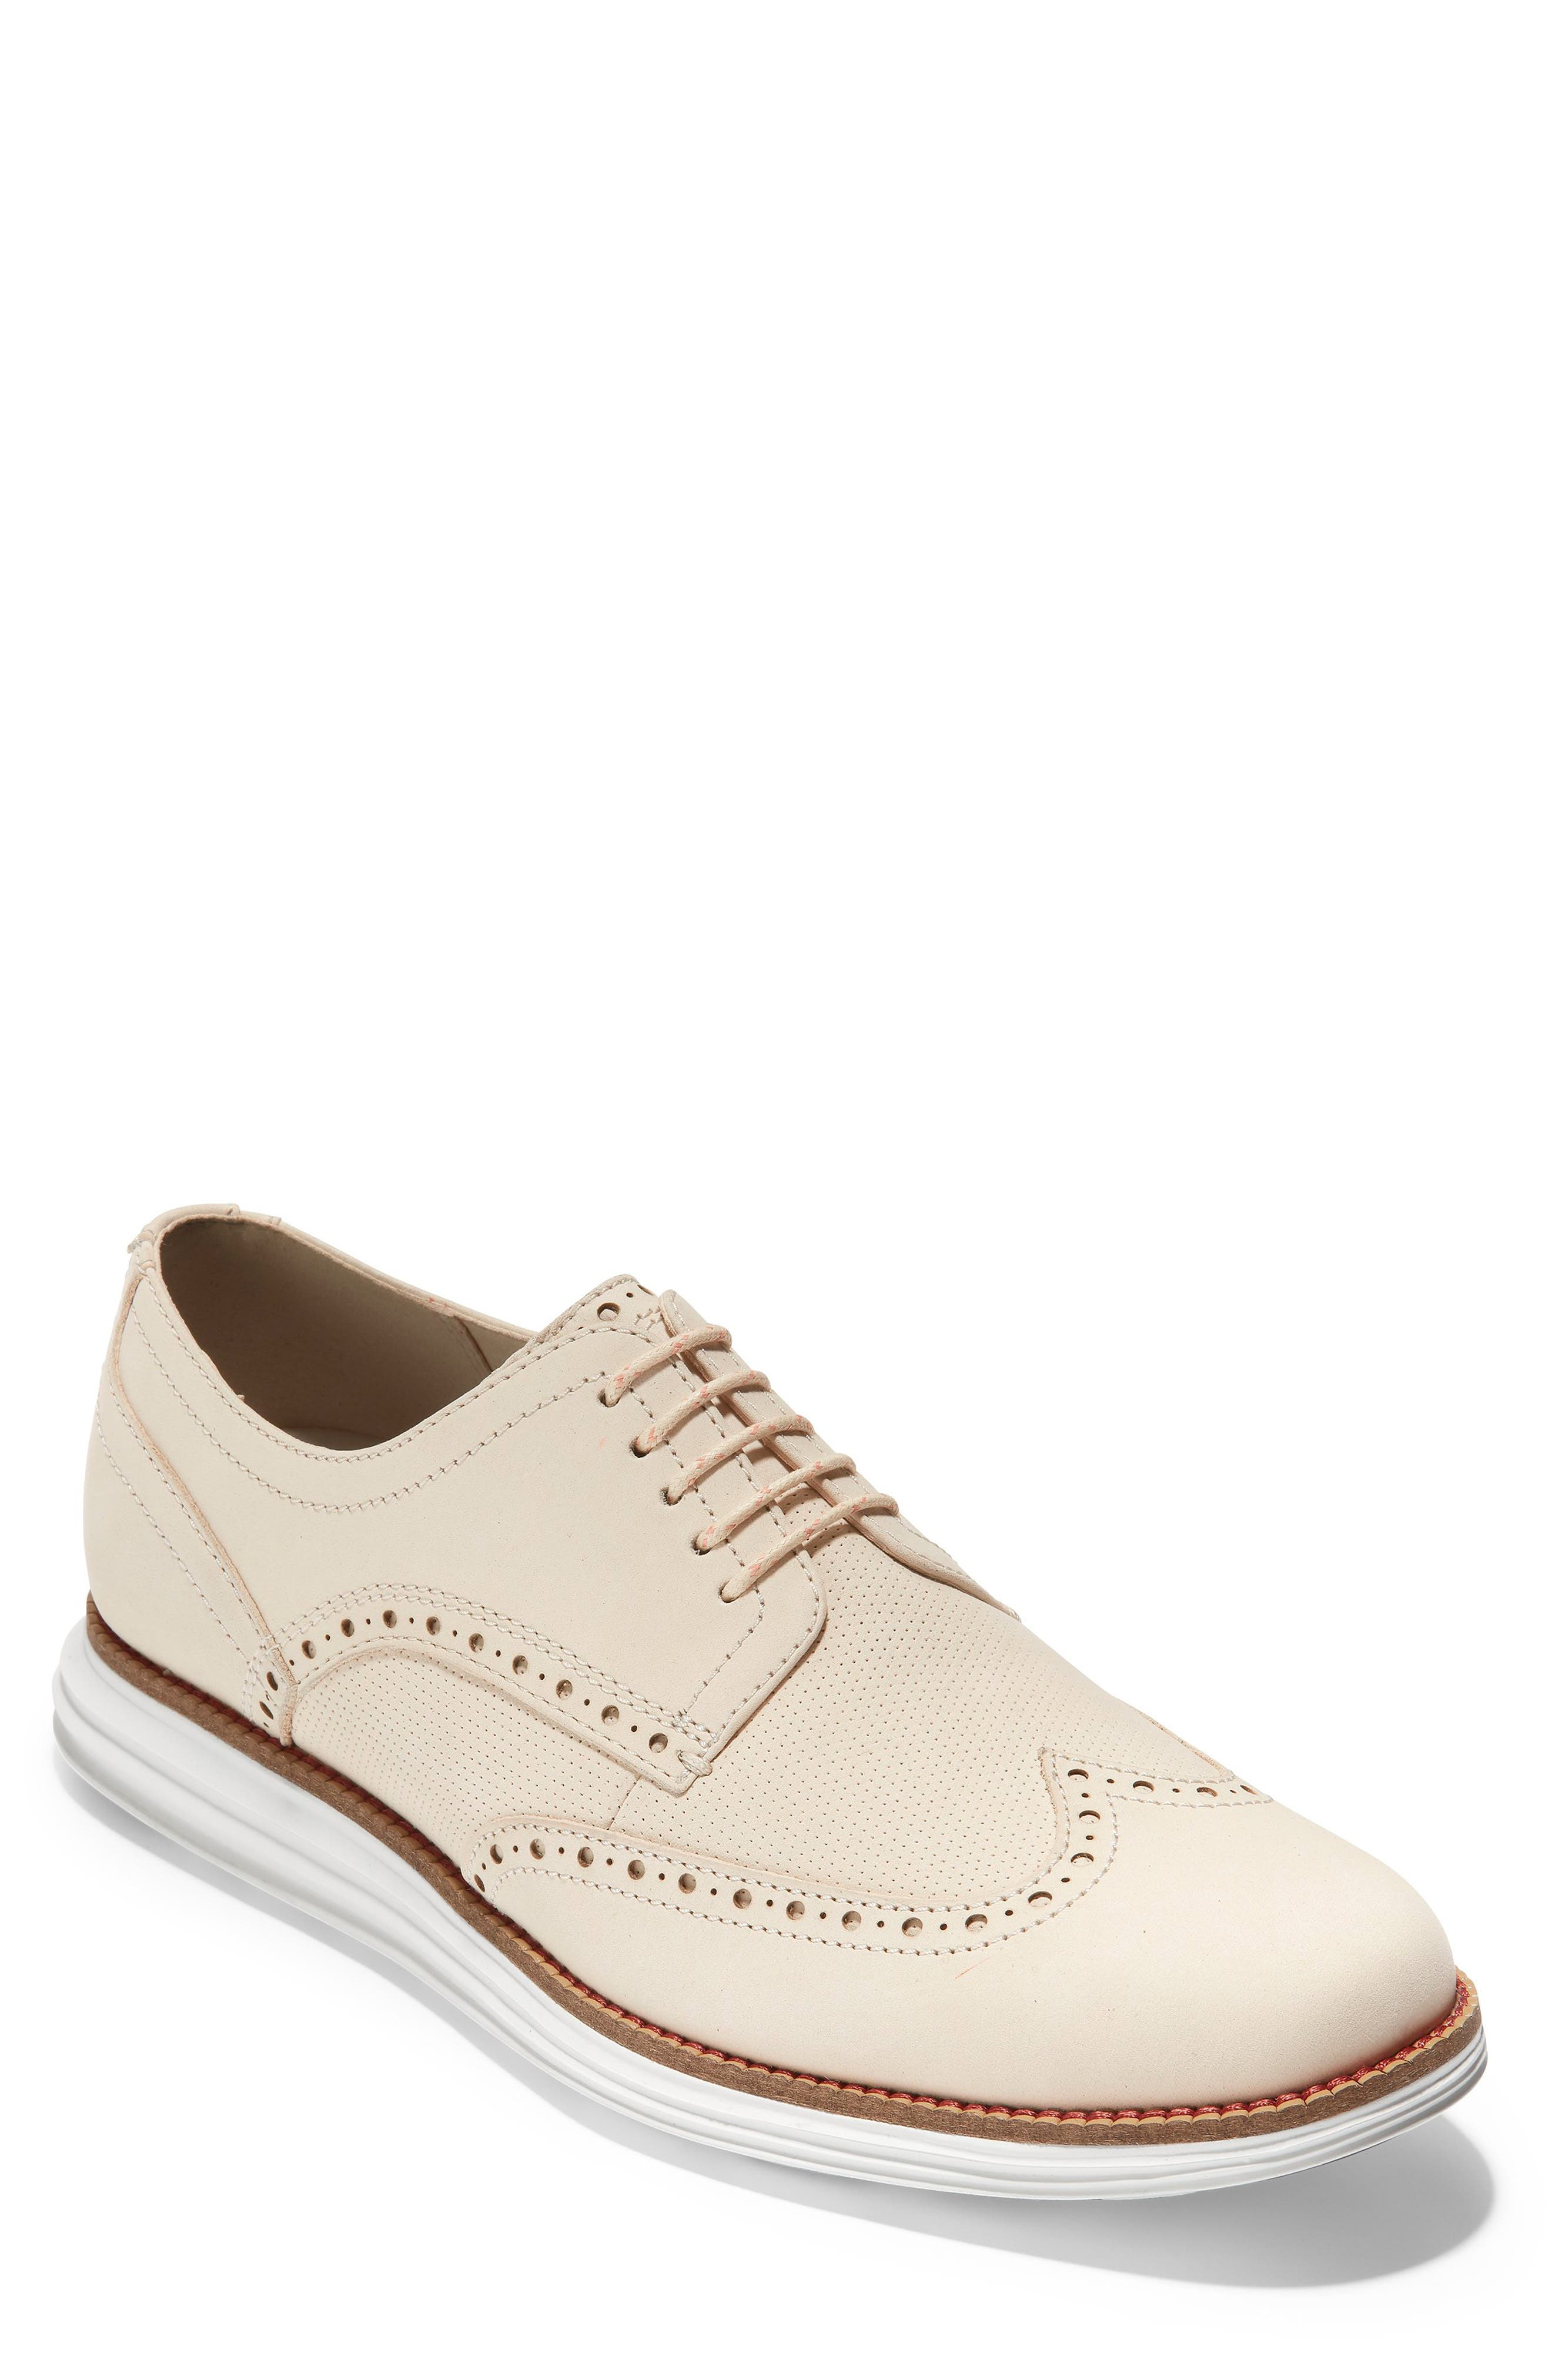 COLE HAAN Original Grand Wingtip, Main, color, SAND/ OPTIC WHITE NUBUCK